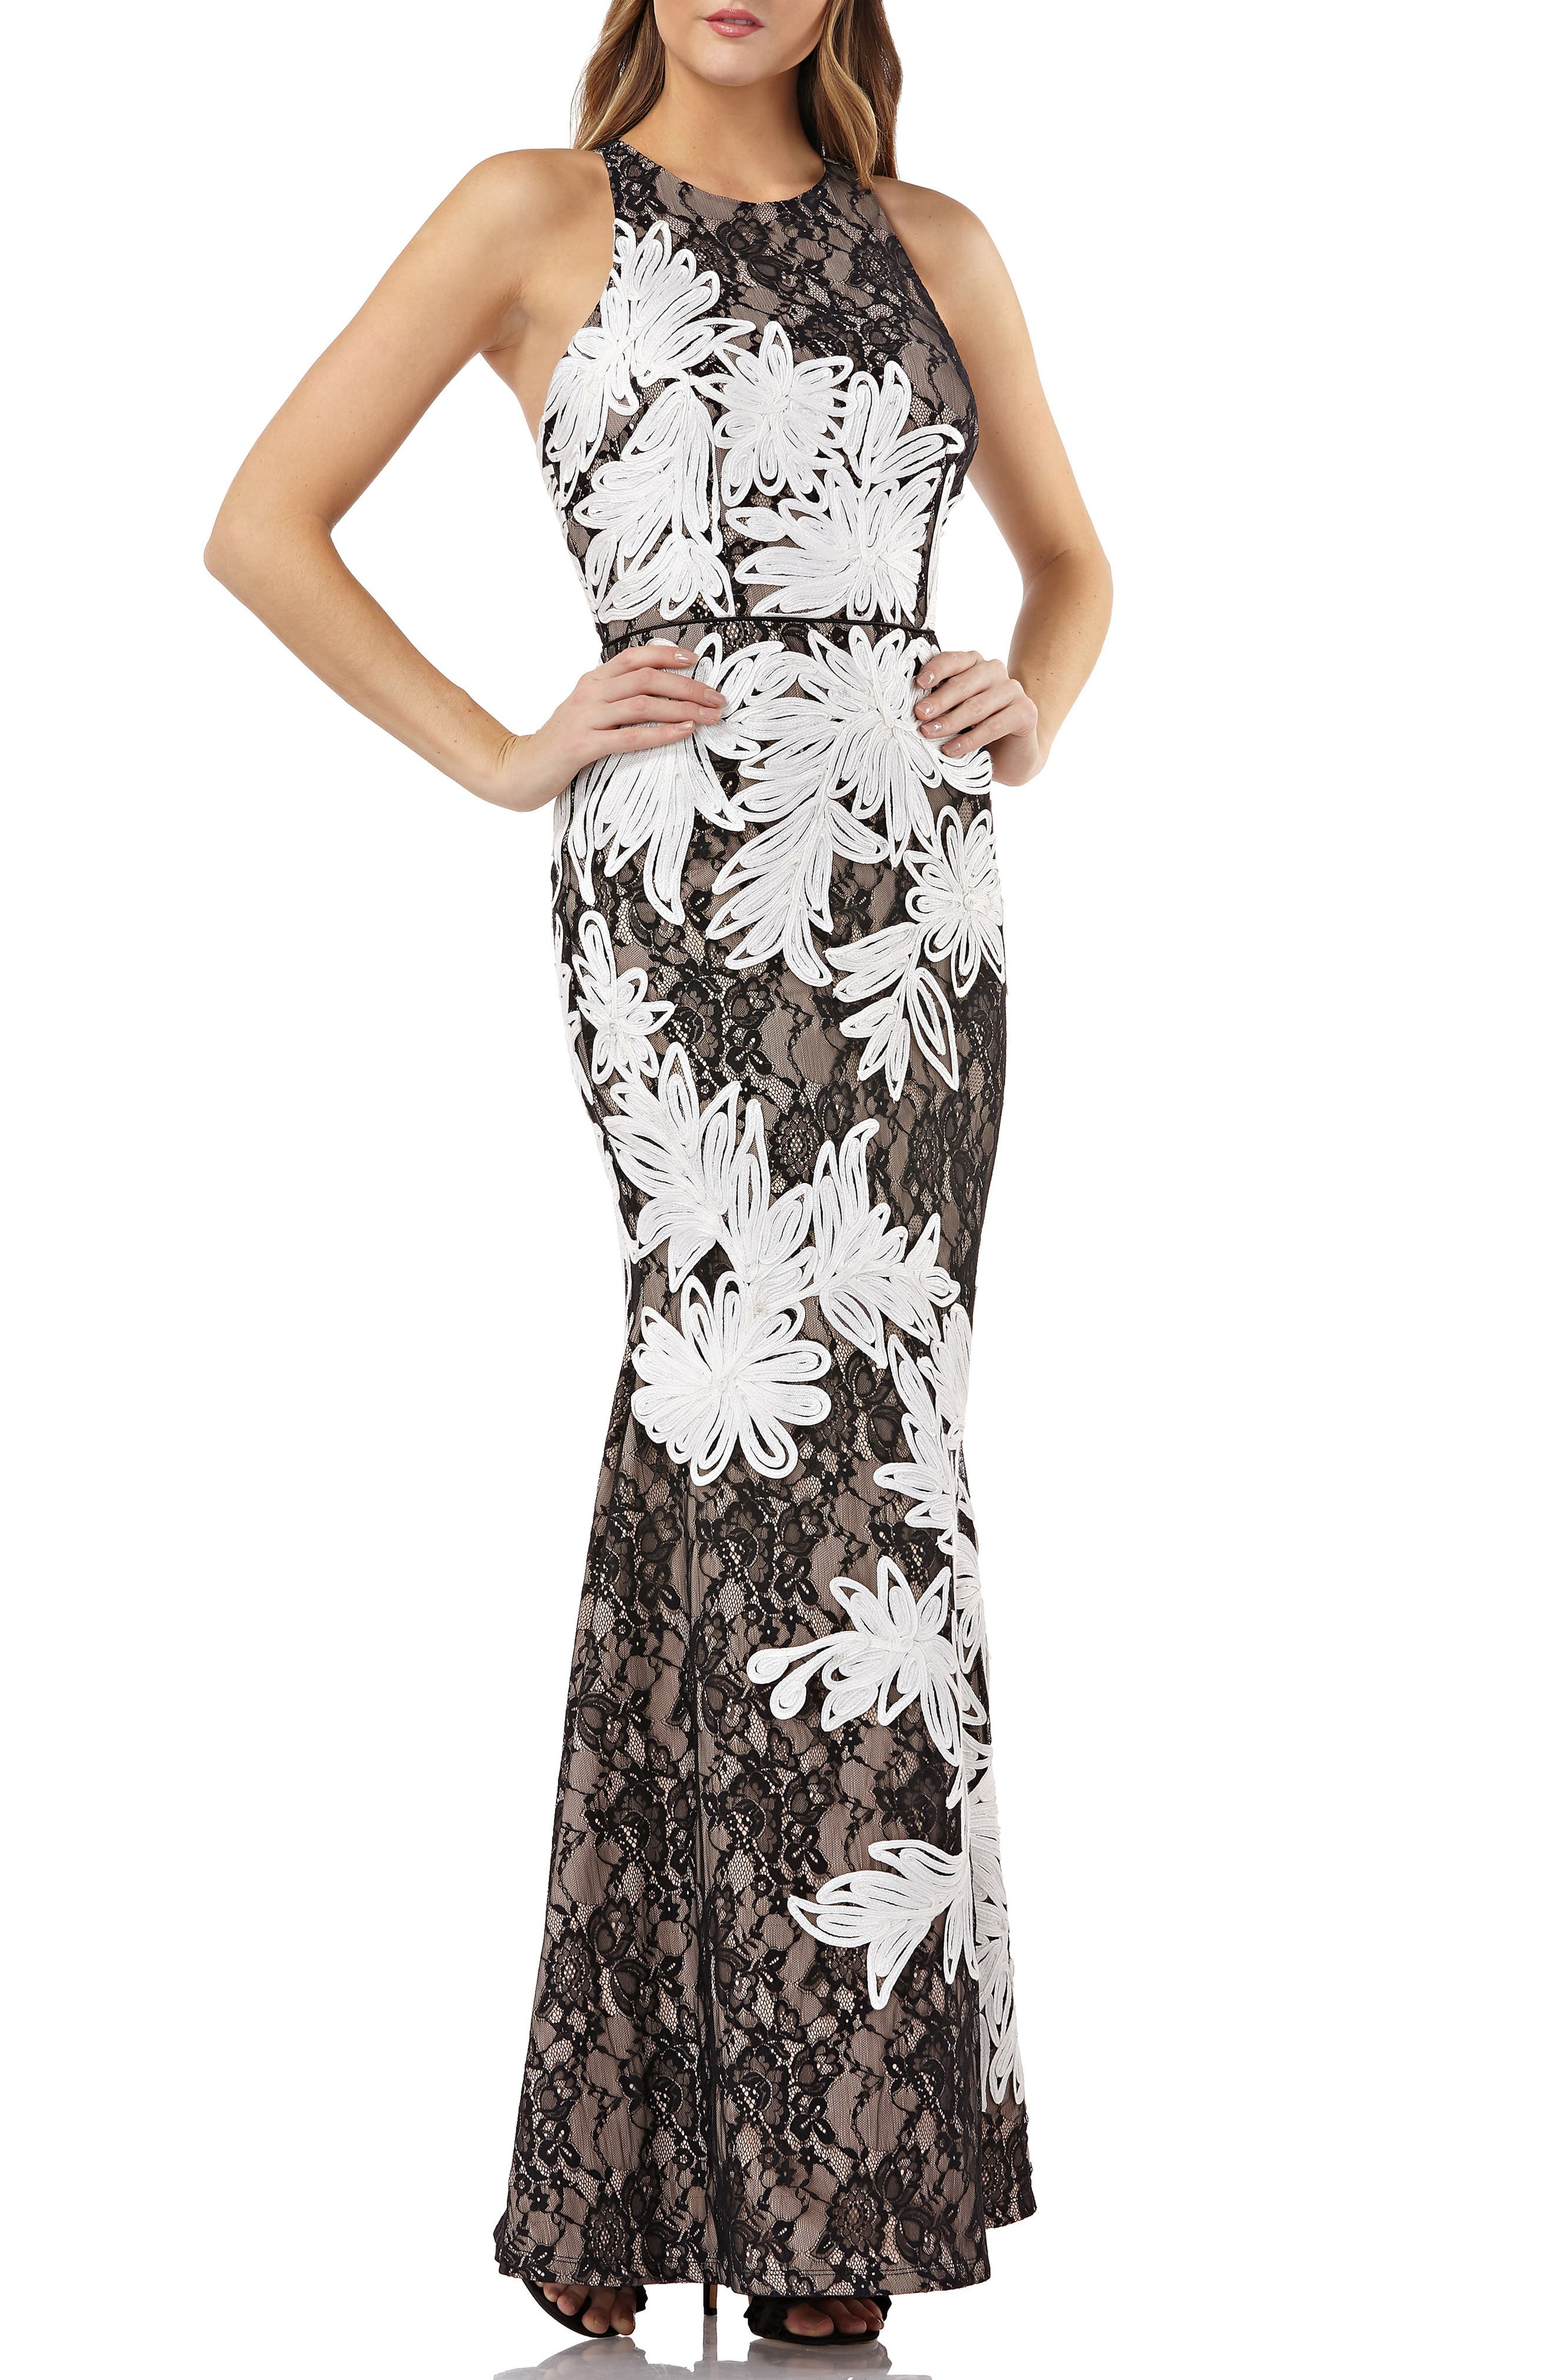 JS COLLECTIONS SOUTACHE EMBROIDERED LACE HALTER GOWN